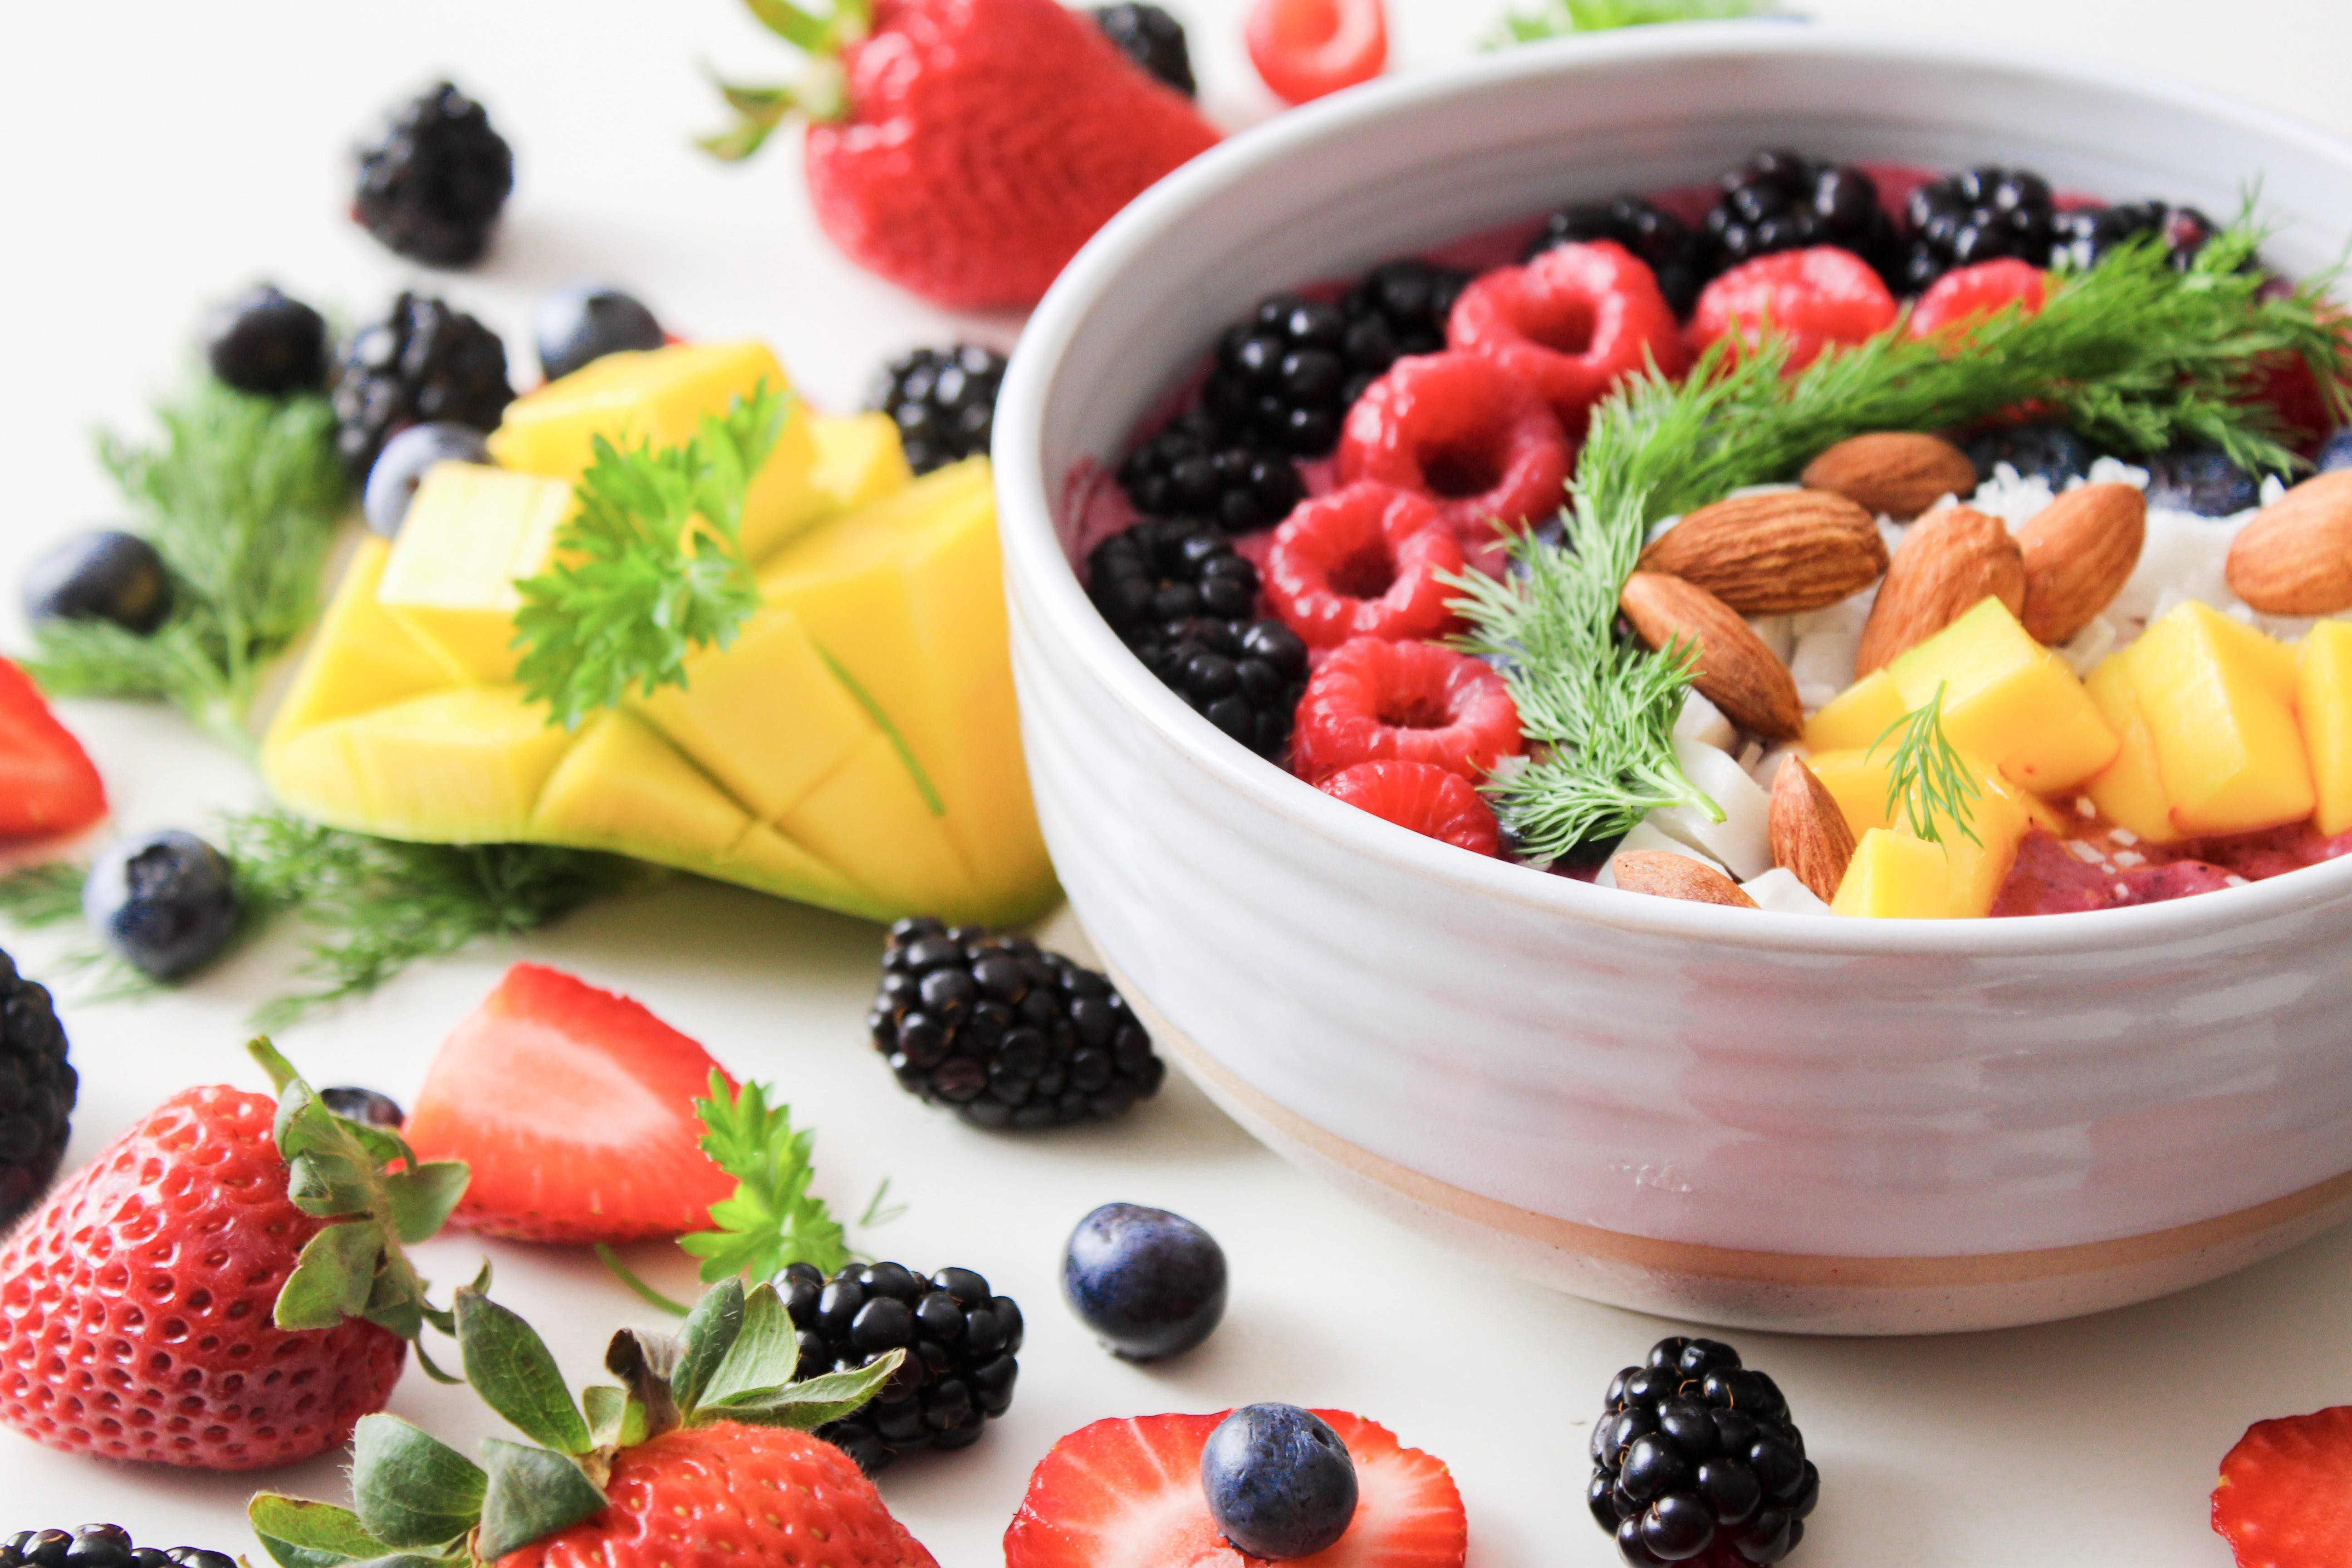 Fruit Salad In White Ceramic Bowl - Ultimate Skincare Guide